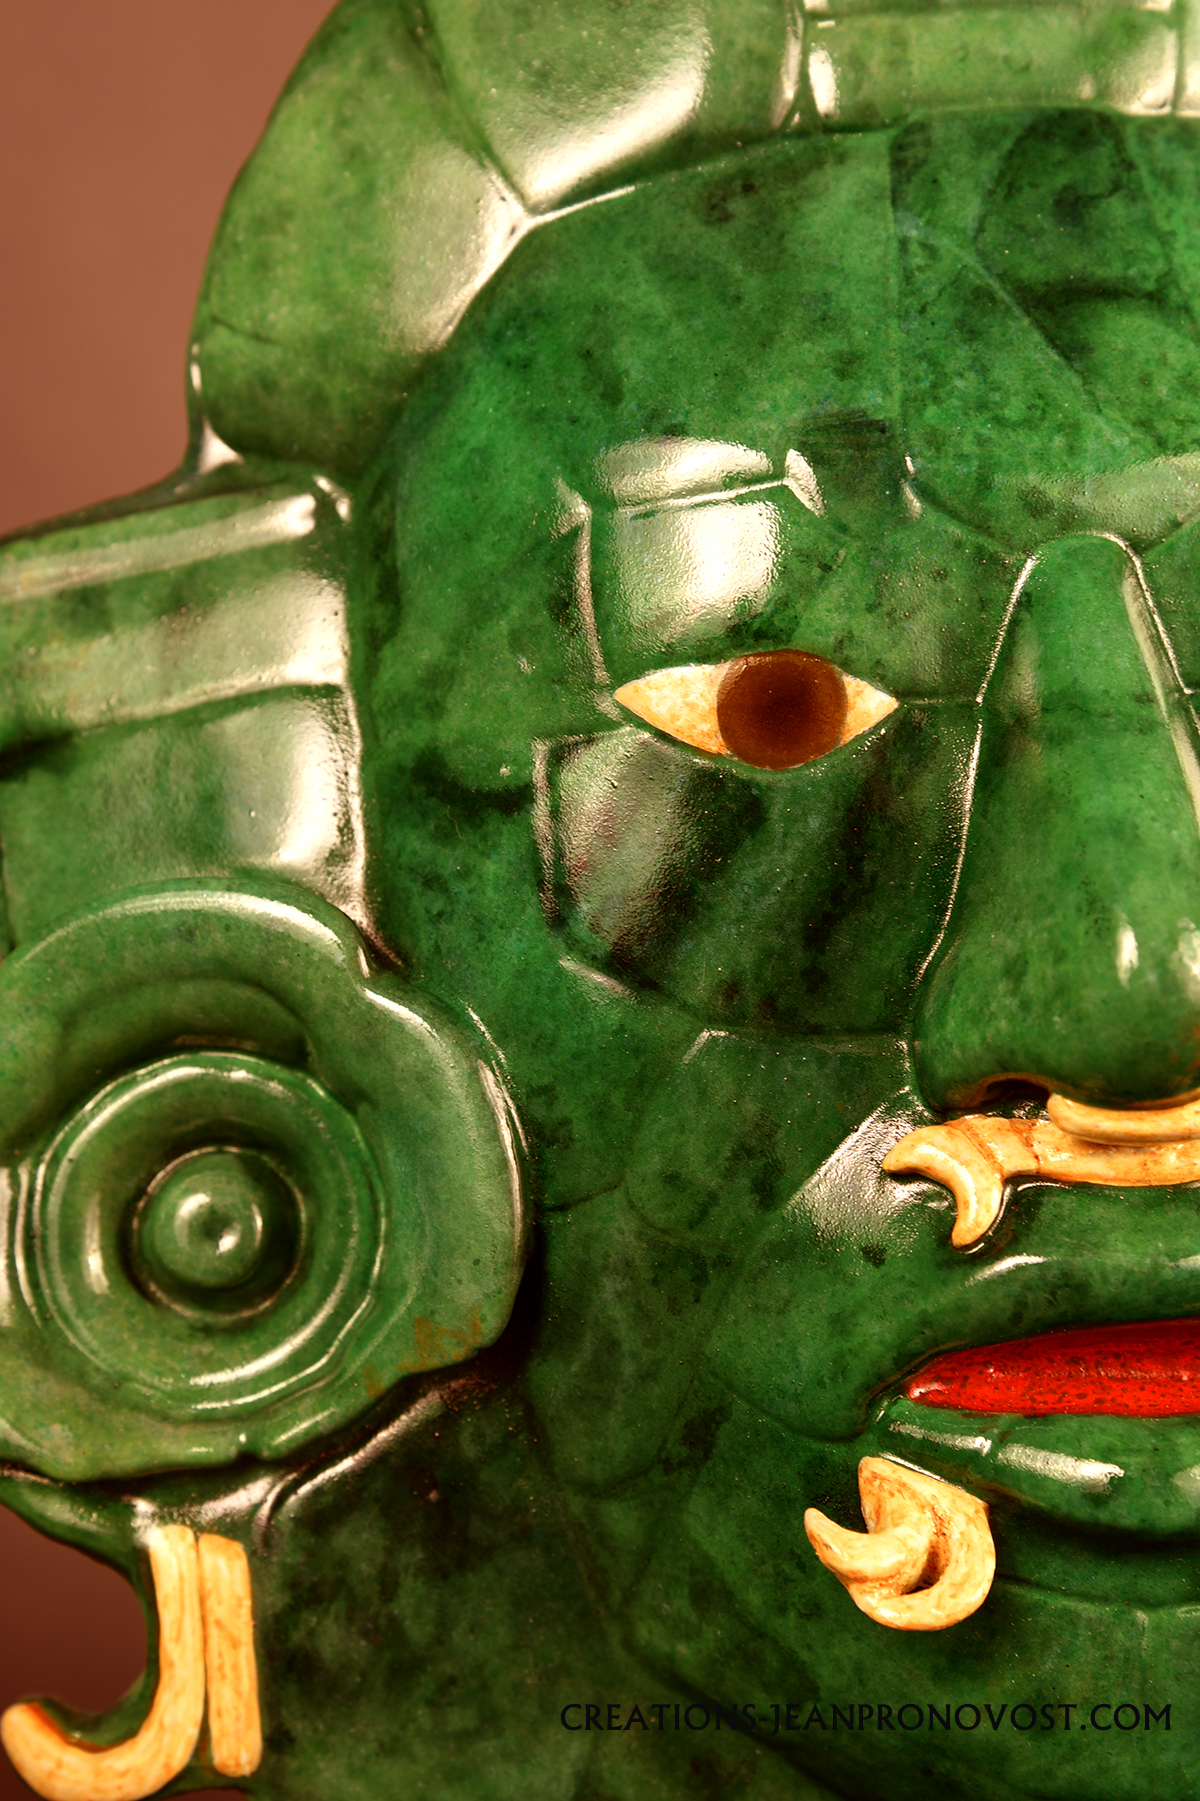 Jade mask sculpture in detail.